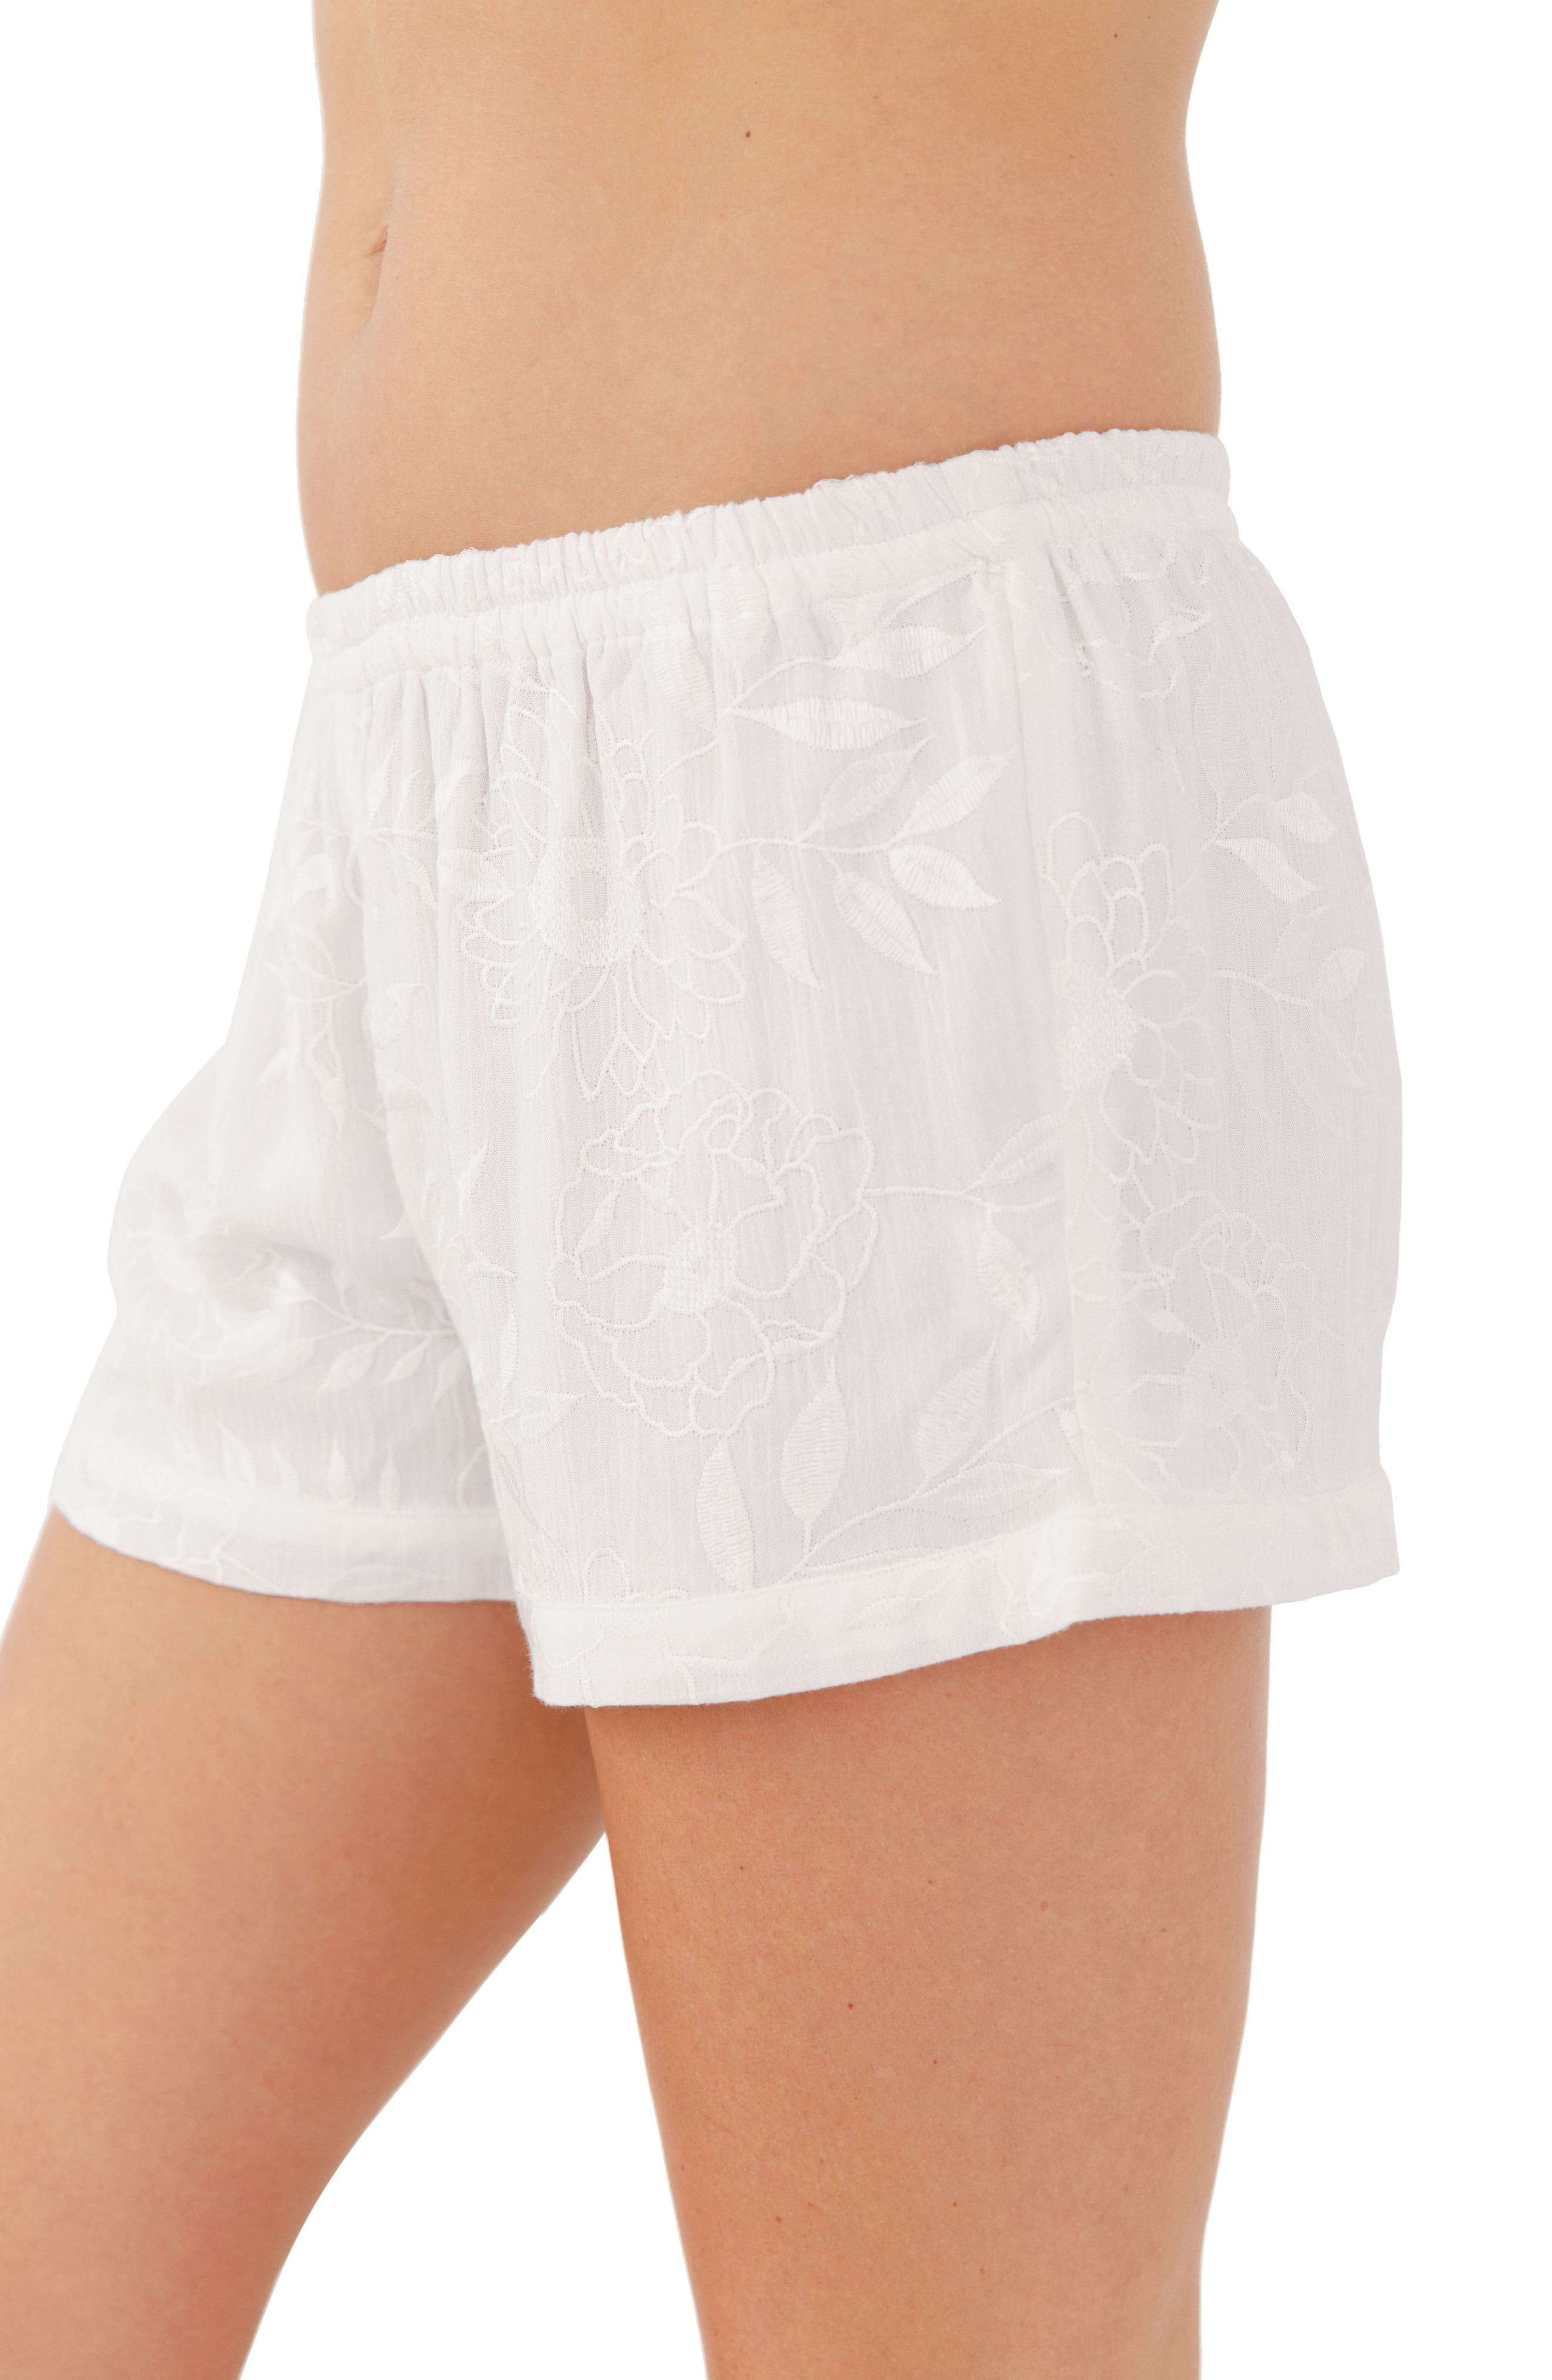 Embroidered Short Pajamas,                             Alternate thumbnail 2, color,                             900